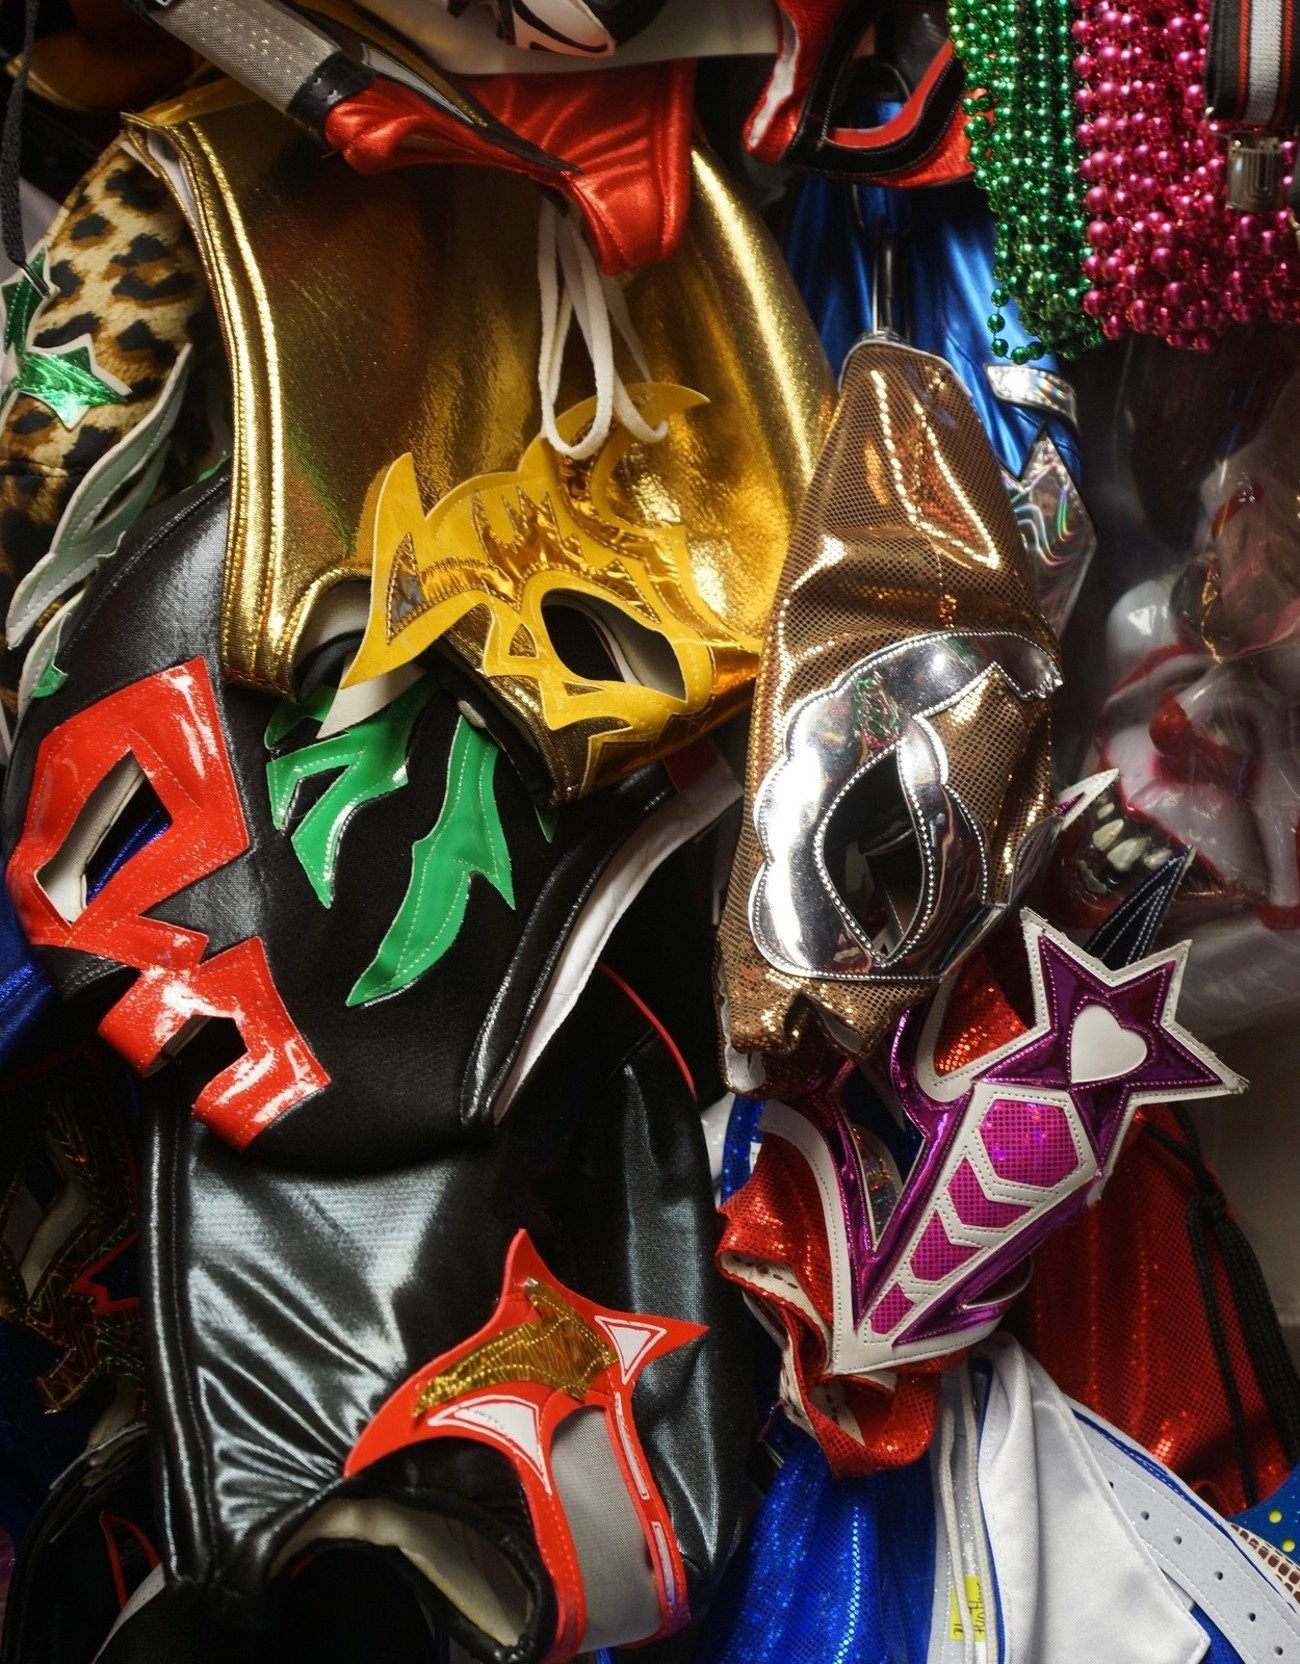 Masked heroes and villains are a part of Mexican modern mythology. These are some of the masks use by these polarity of characters.